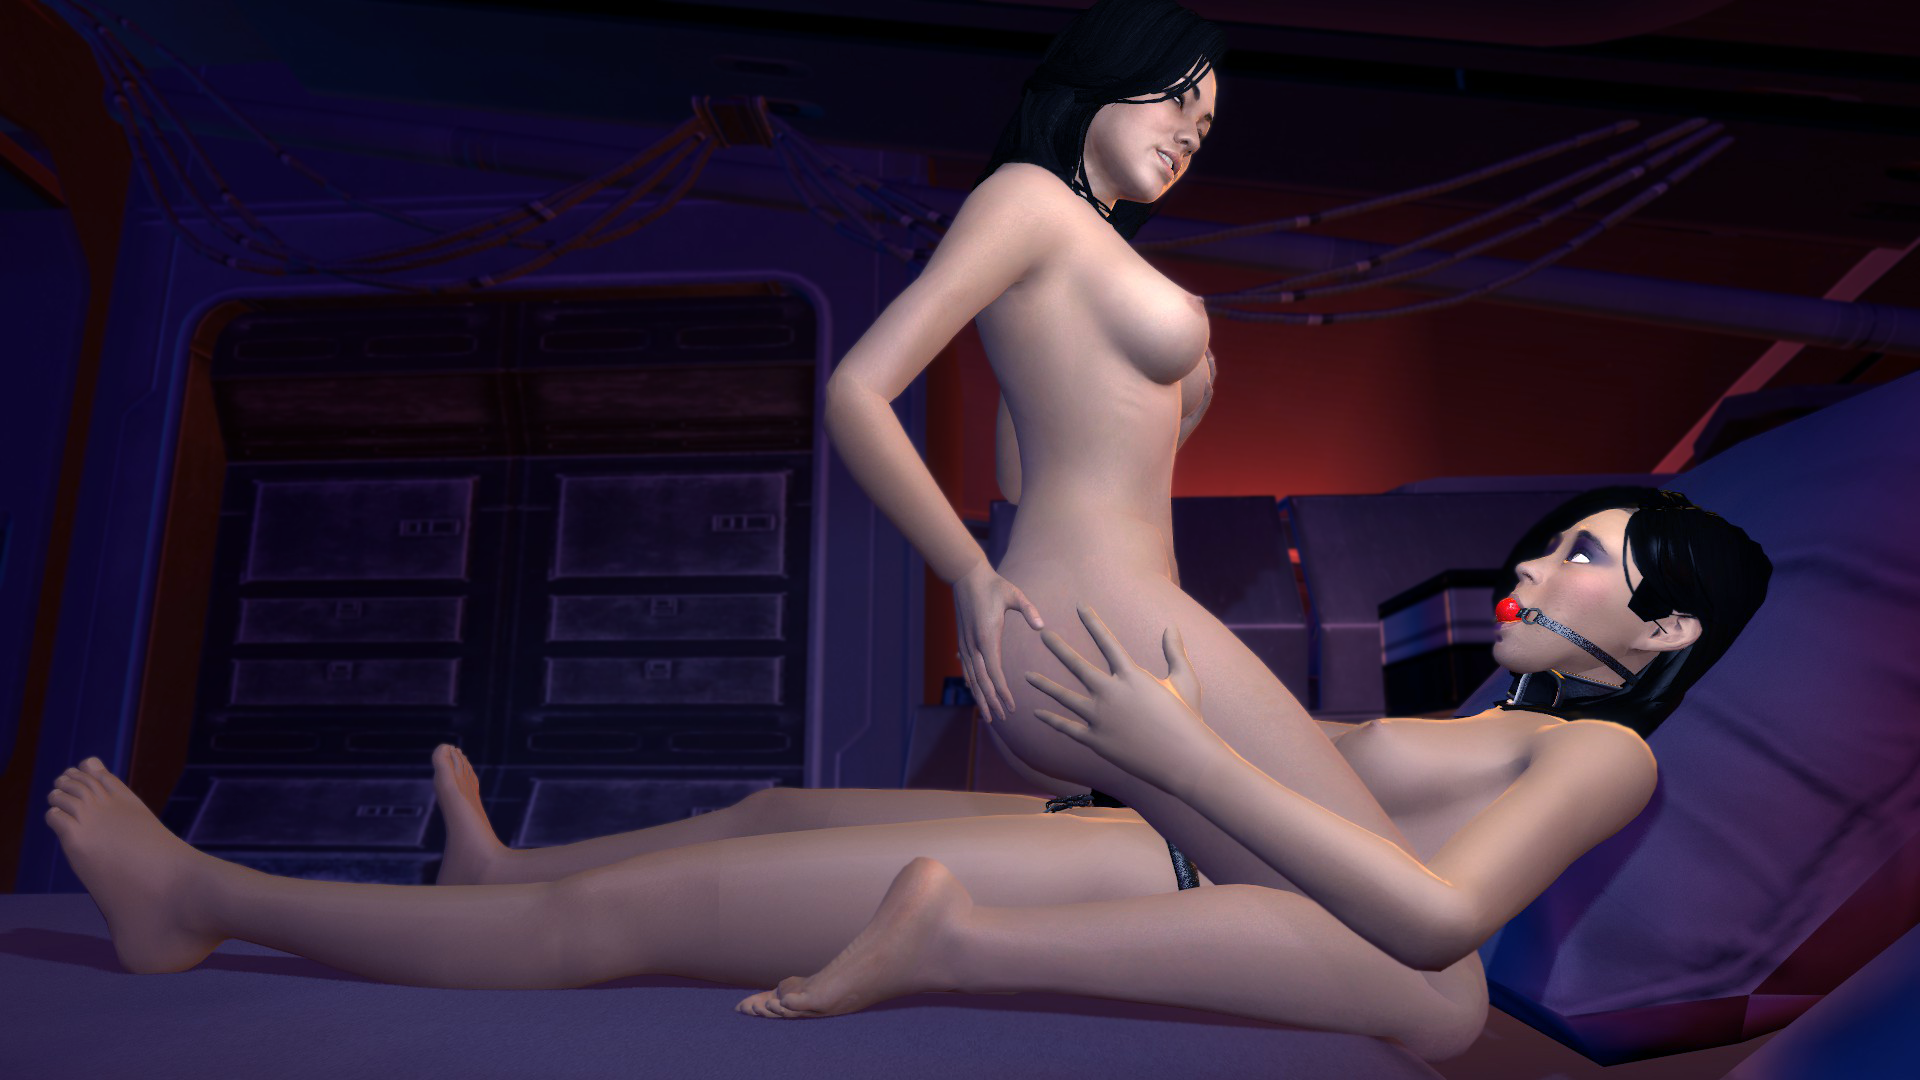 Mass effect female character porn mod adult picture